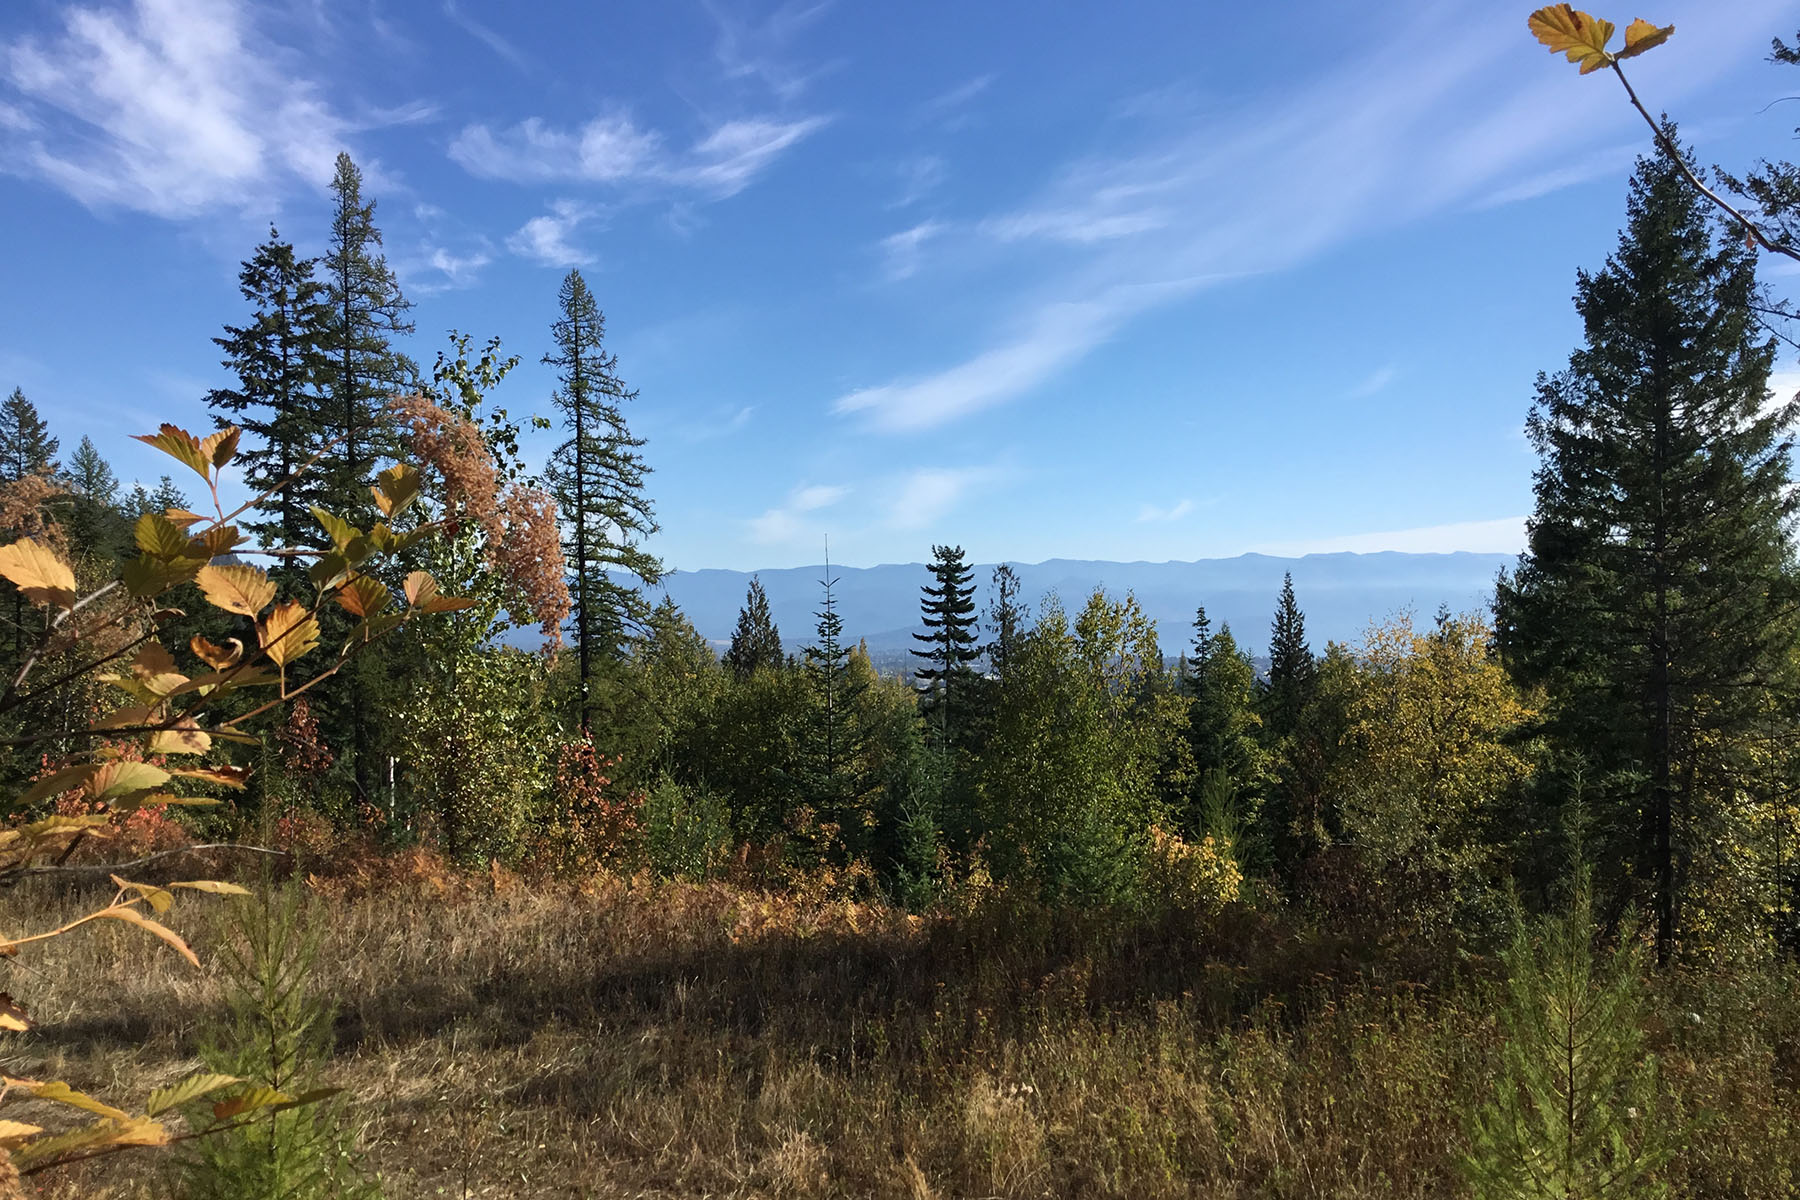 Lake Pend Oreille View Parcel NNA Hidden Spring Rd Sandpoint, Idaho 83864 United States